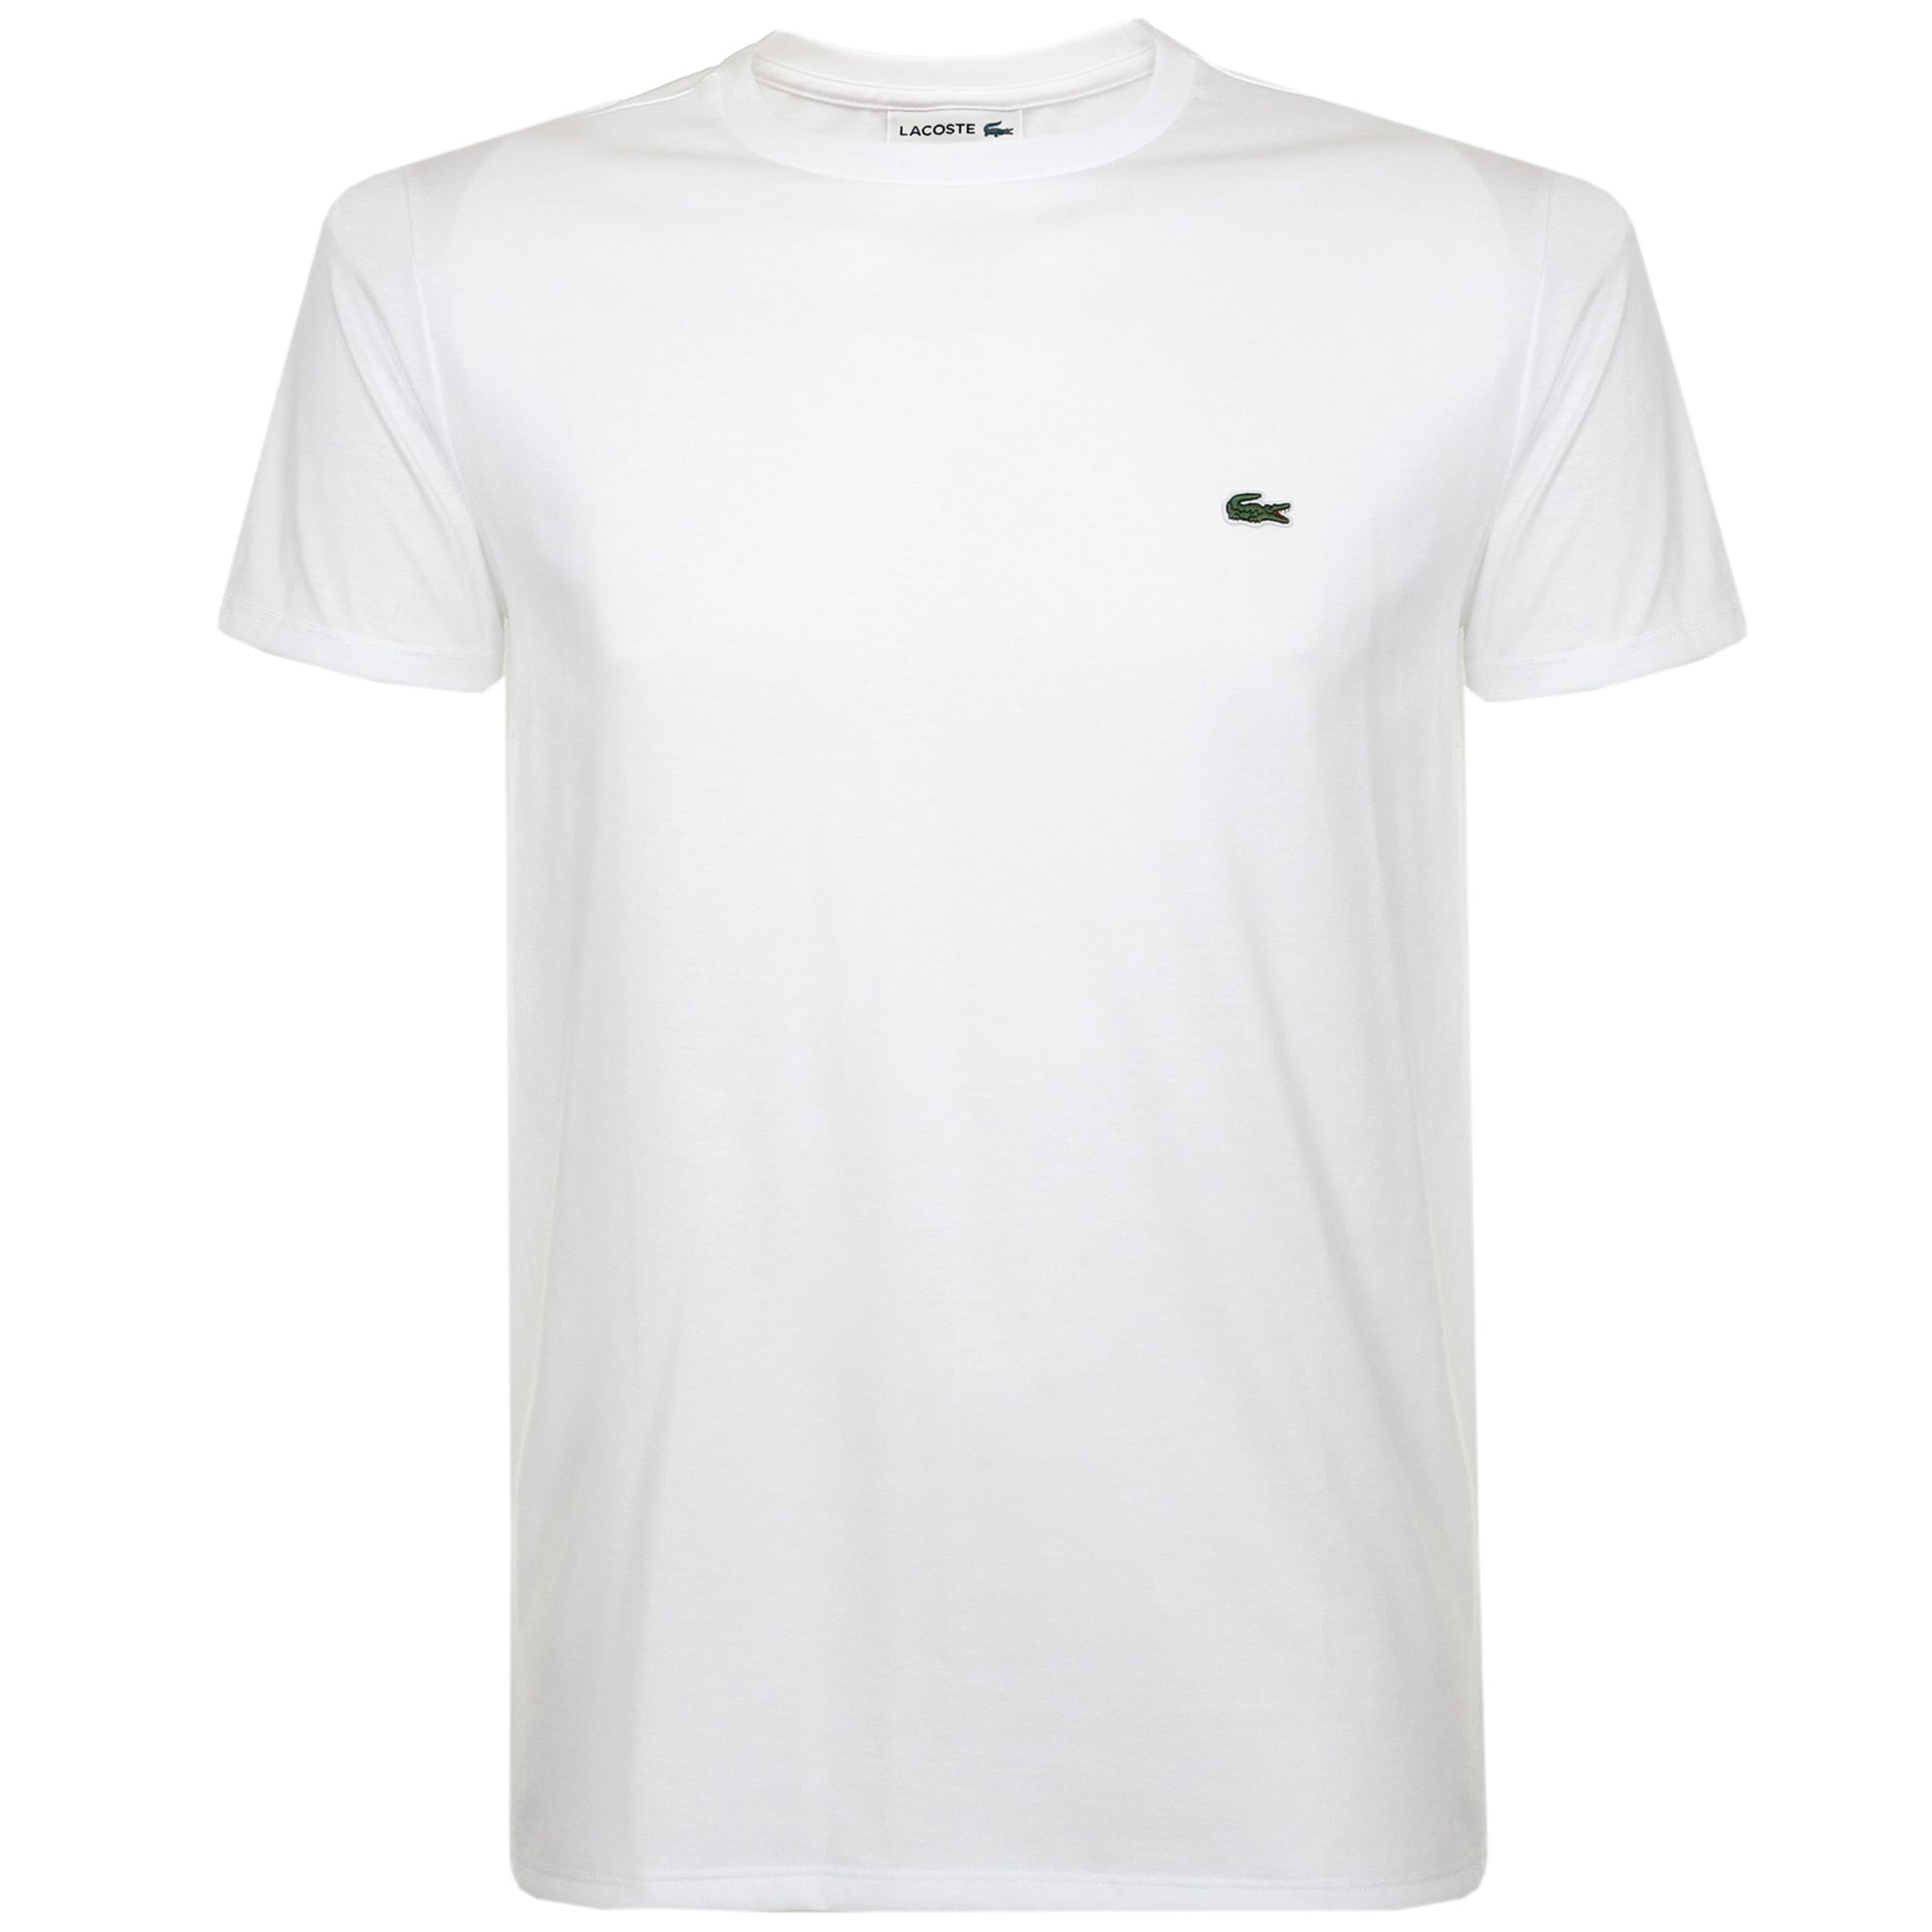 78f82a9ce072cd Lacoste Pima Cotton White T-Shirt TH670900001